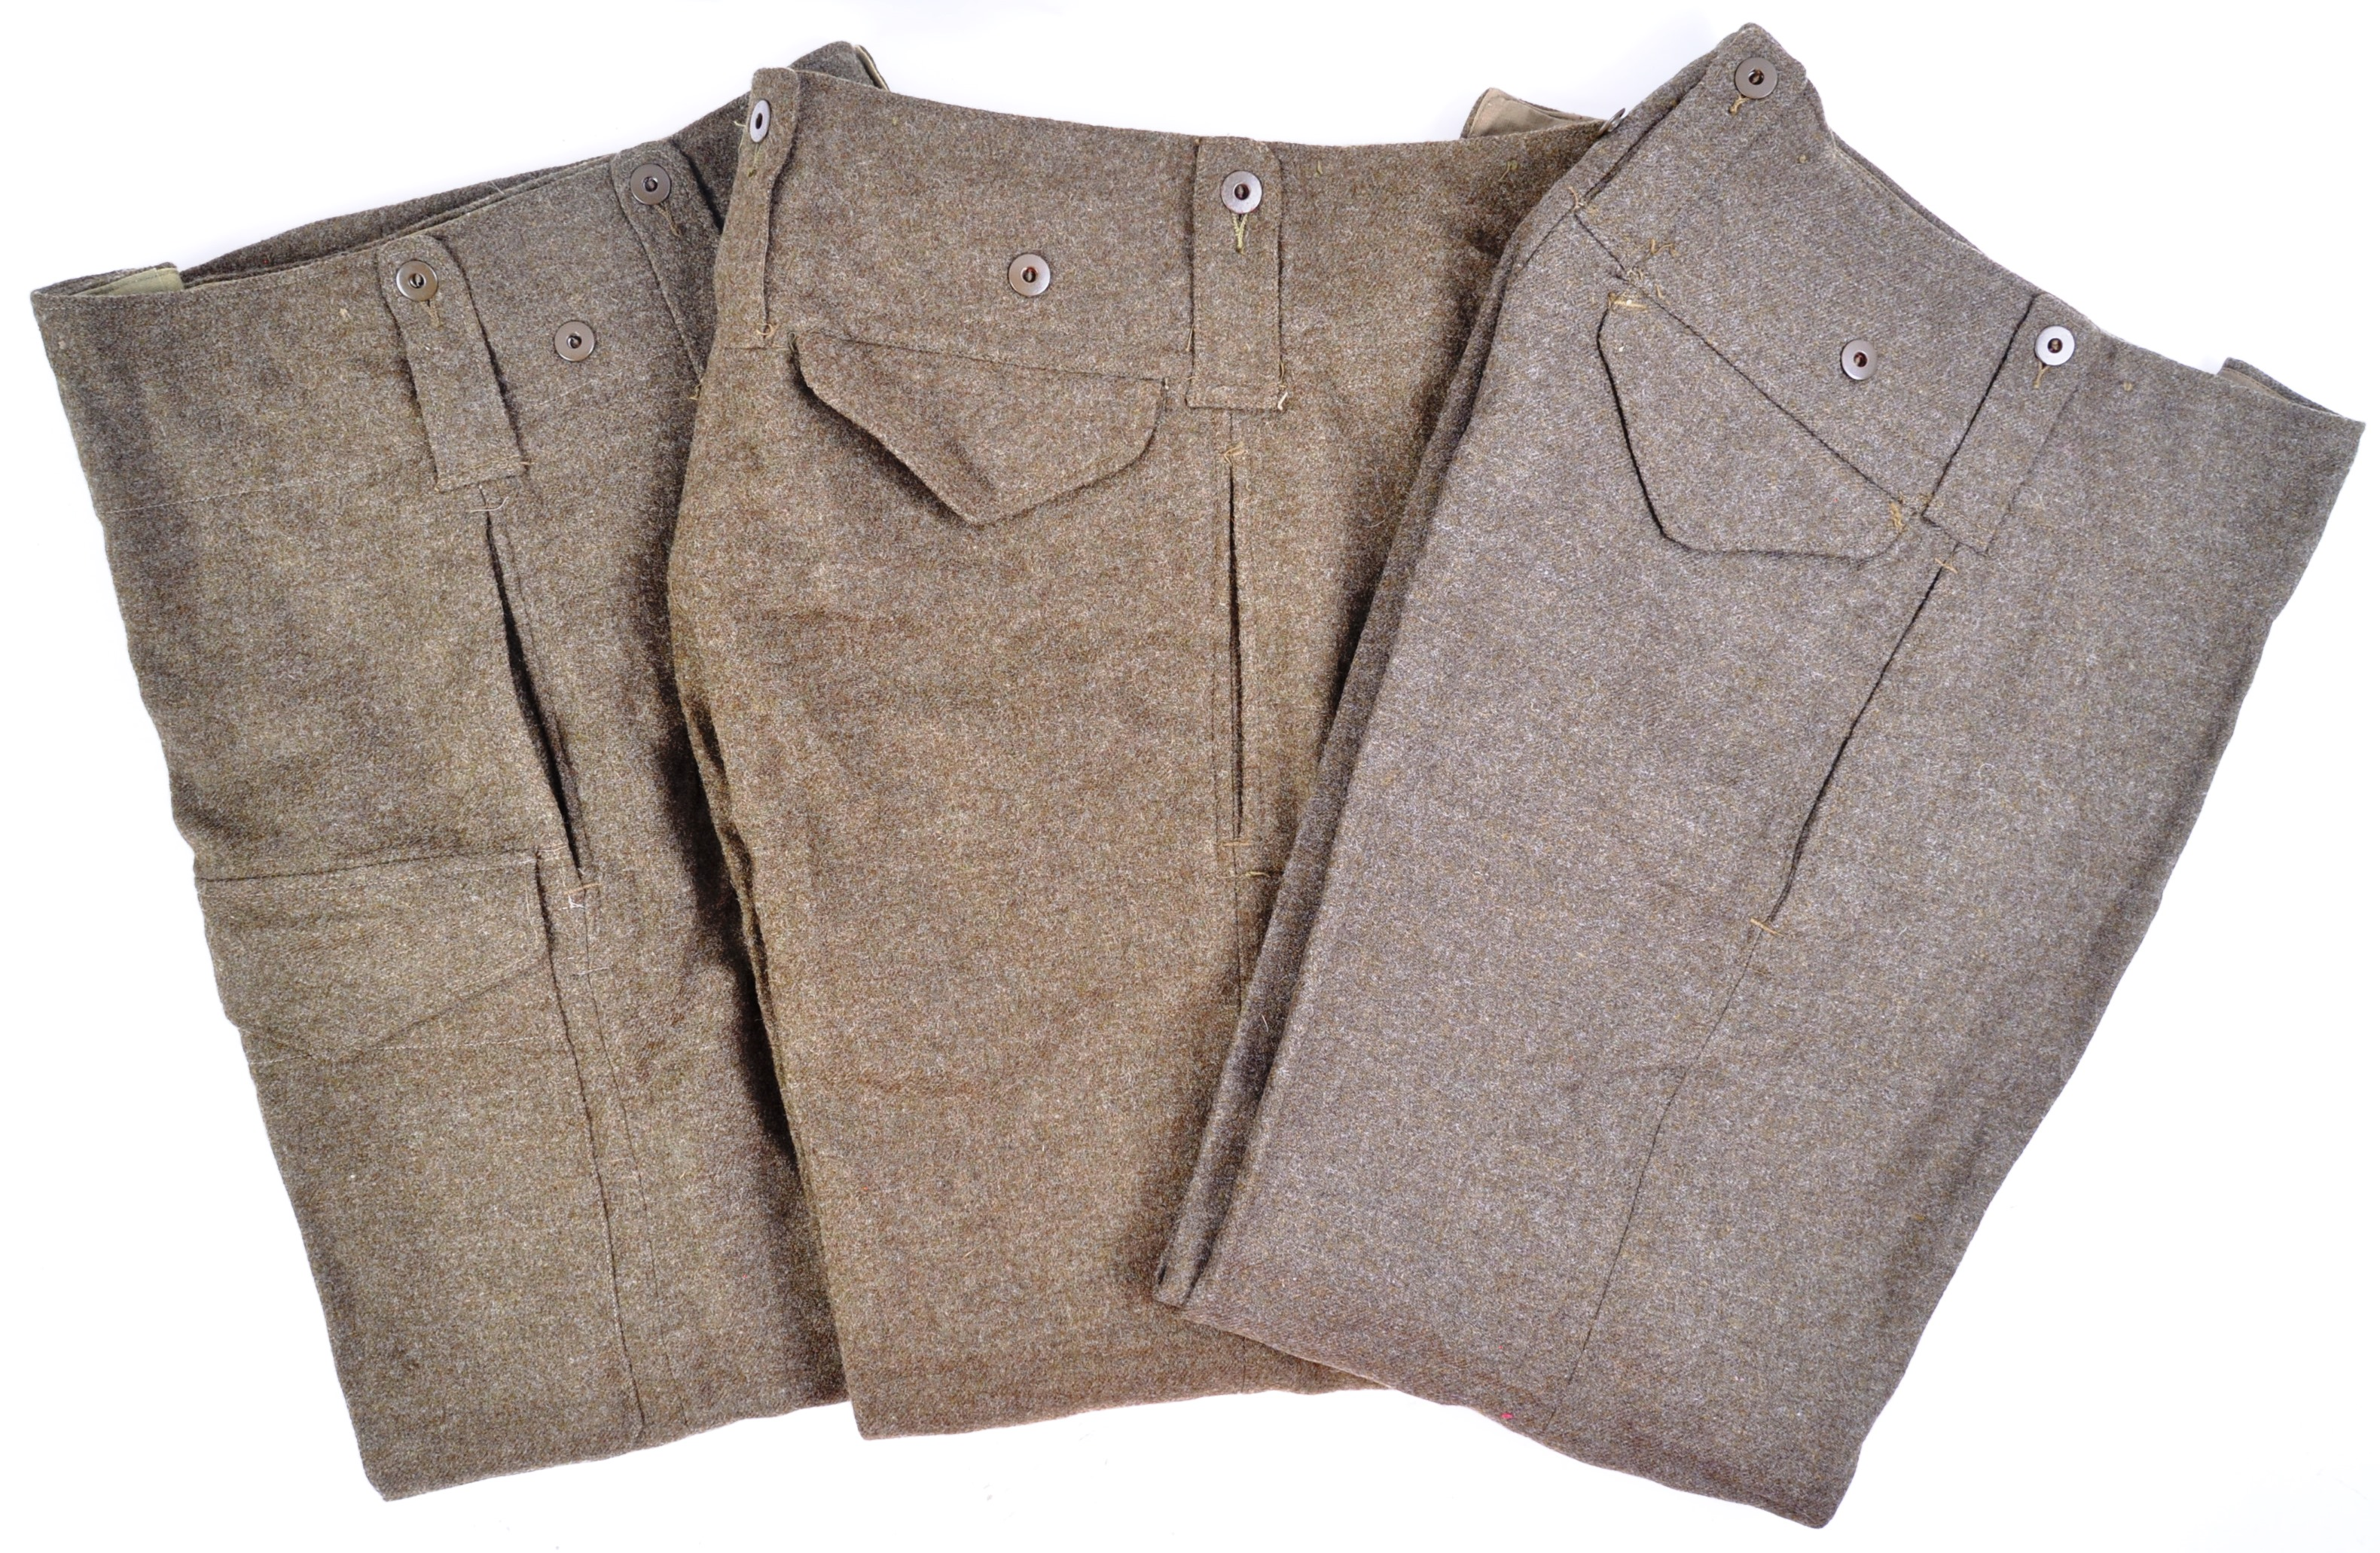 WWII SECOND WORLD WAR INTEREST - BRITISH ARMY TROUSERS